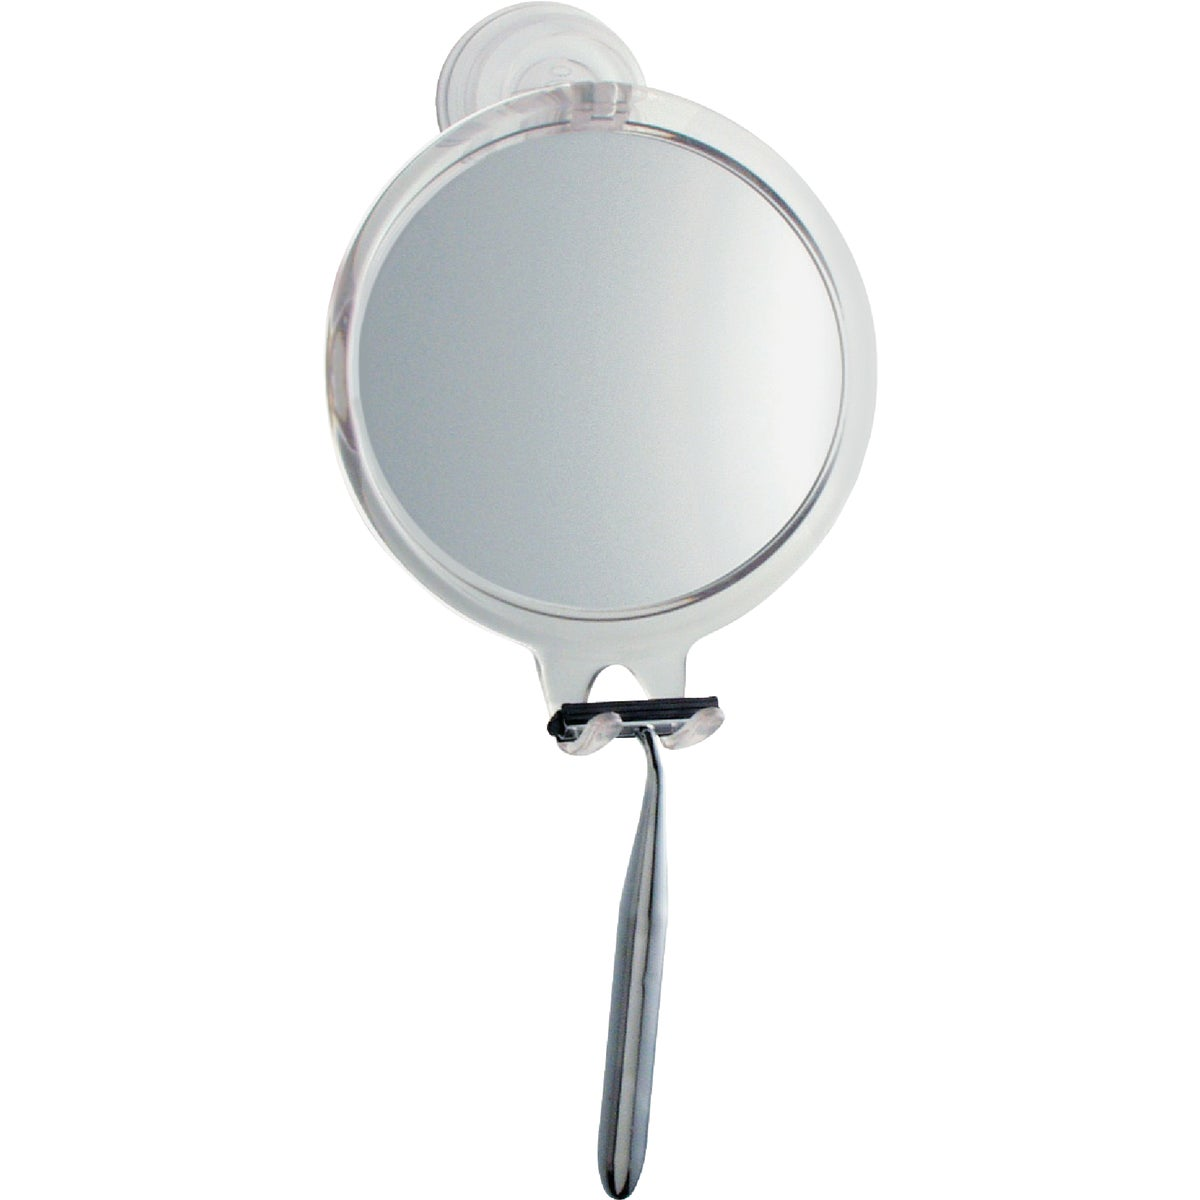 SUCTION FOG FREE MIRROR - 52120 by Interdesign Inc